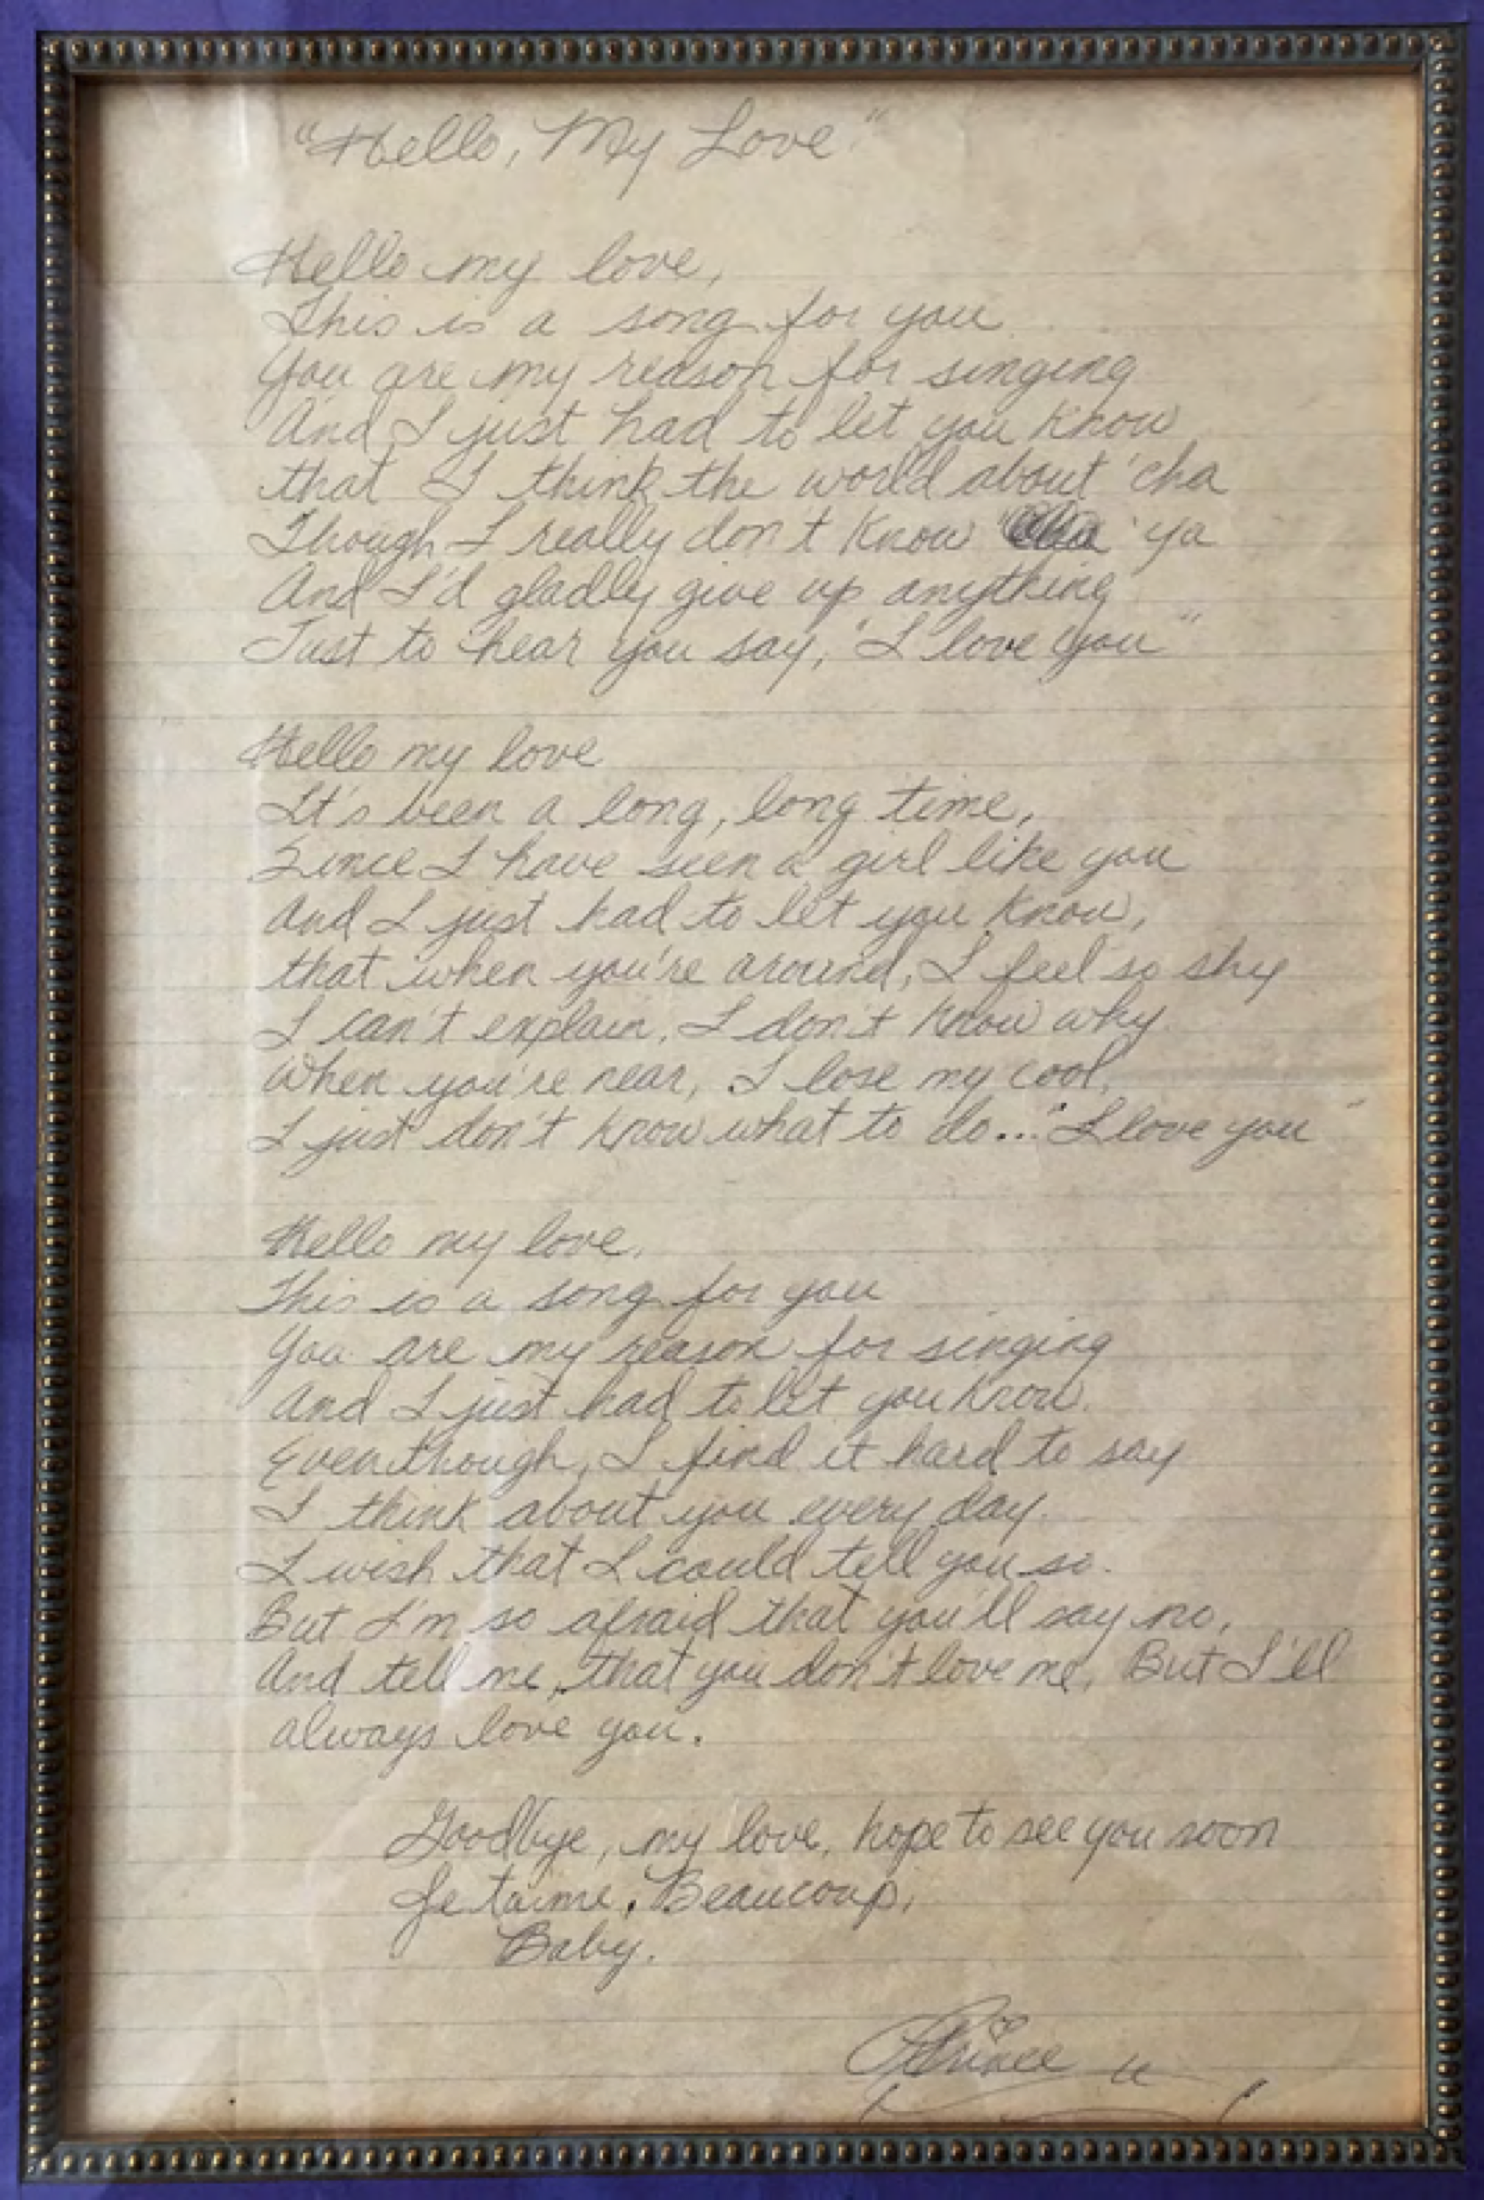 Hello, My Love lyrics written by Prince. Provided by Nancy Altman.